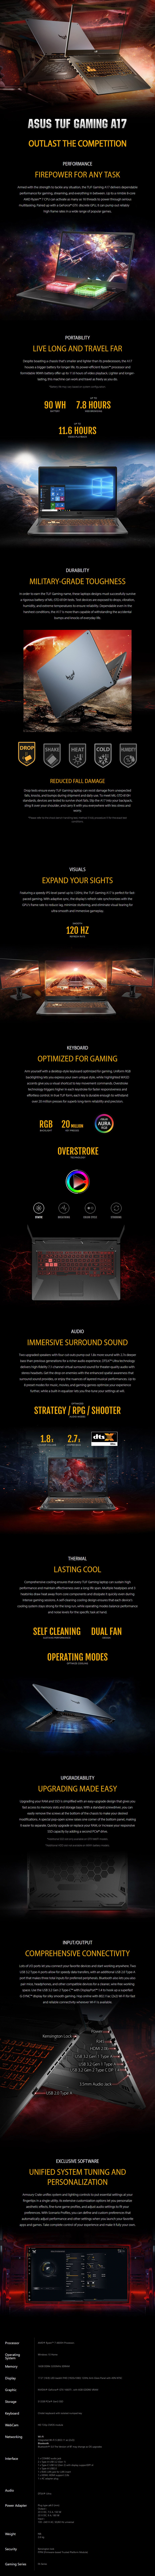 asus-tuf-gaming-fa706iu-173-144hz-gaming-laptop-r74800h-16gb-512gb-gtx1660ti-ac36506-15.jpg